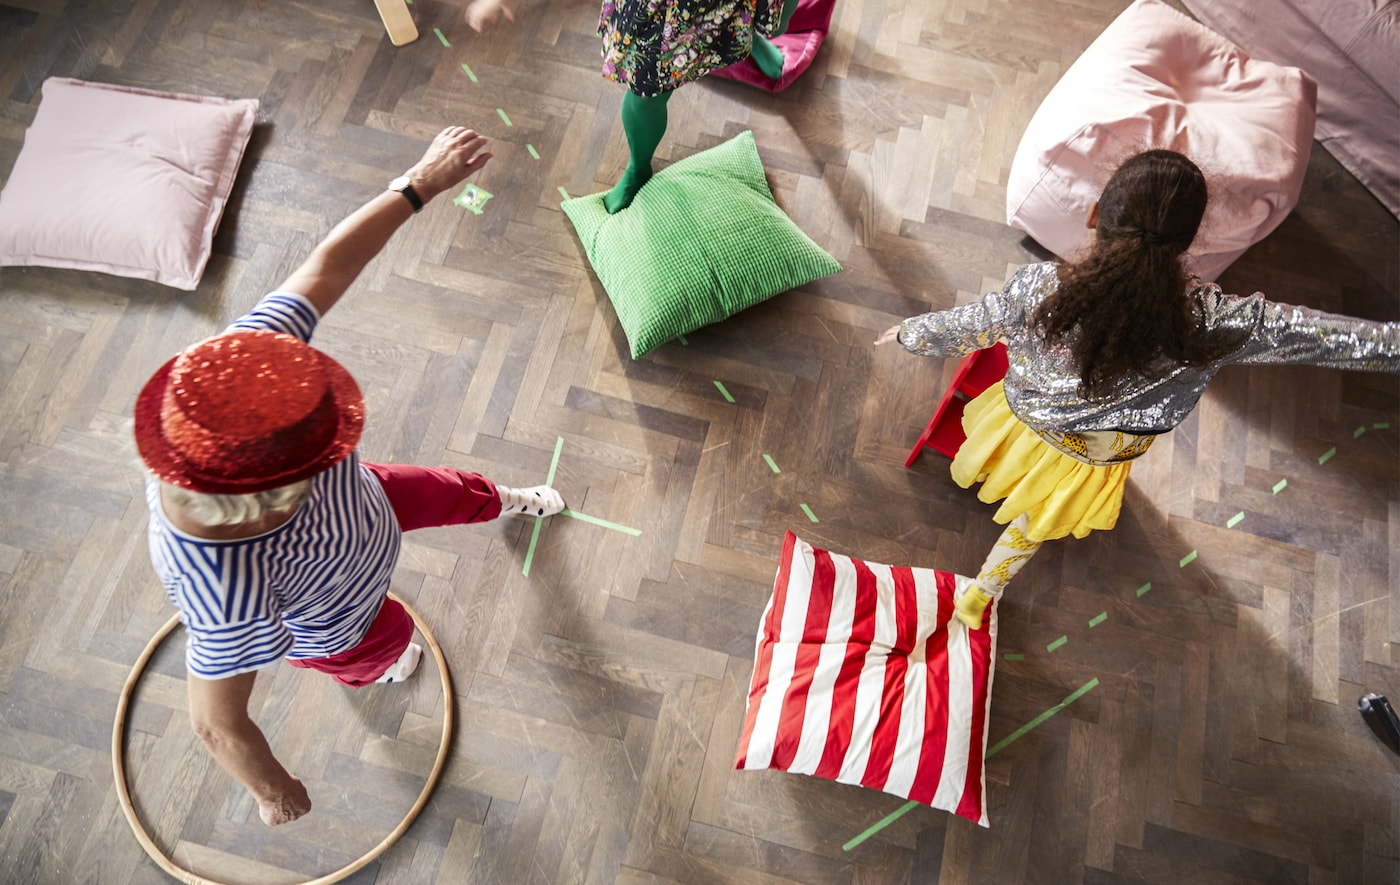 Children and adults playing a game with cushions on the floor.